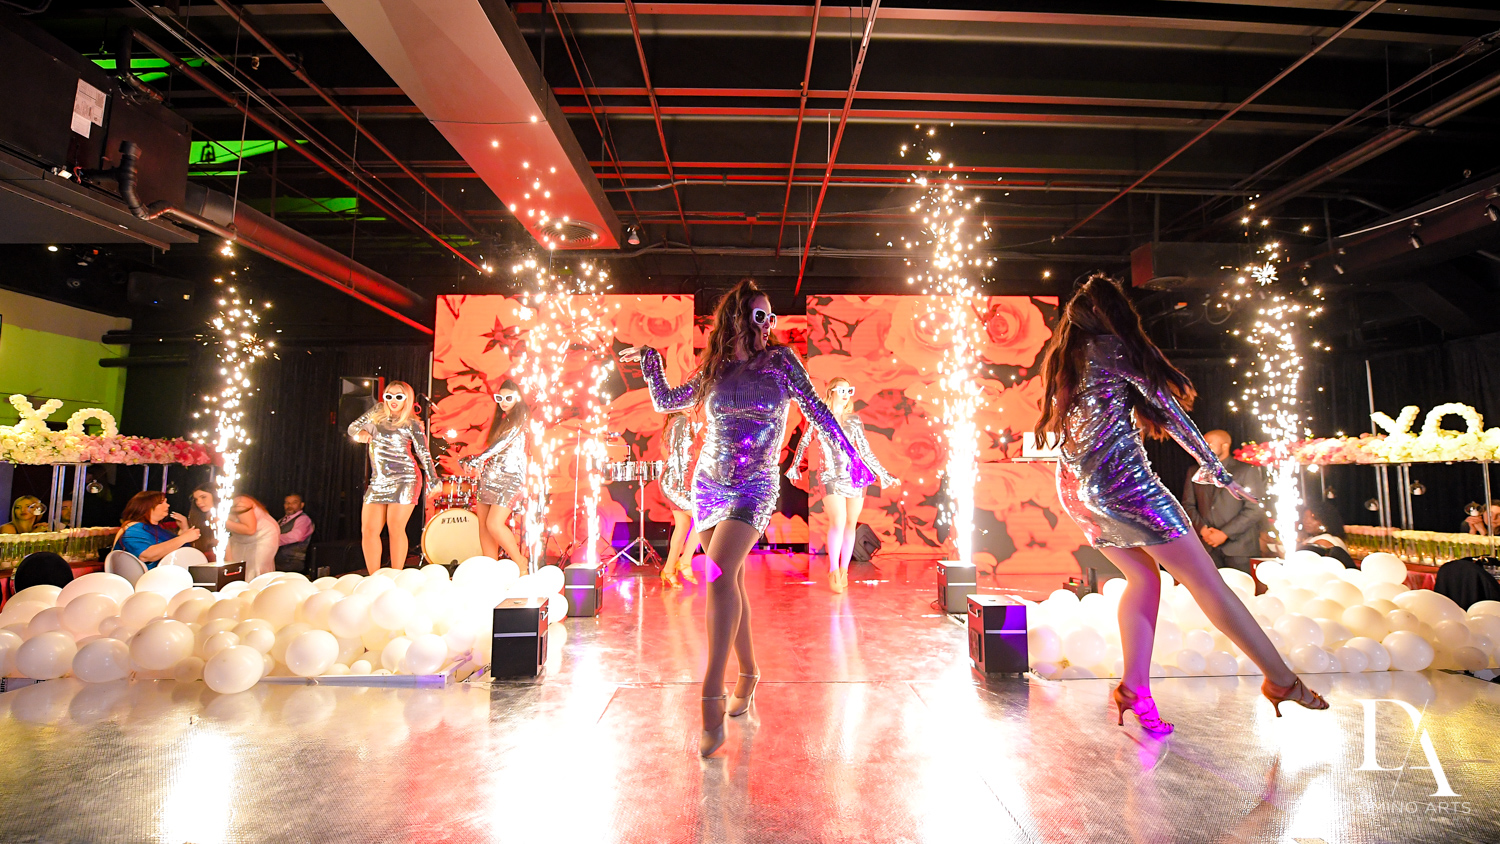 fireworks at Fashion Theme Bat Mitzvah at Gallery of Amazing Things by Domino Arts Photography